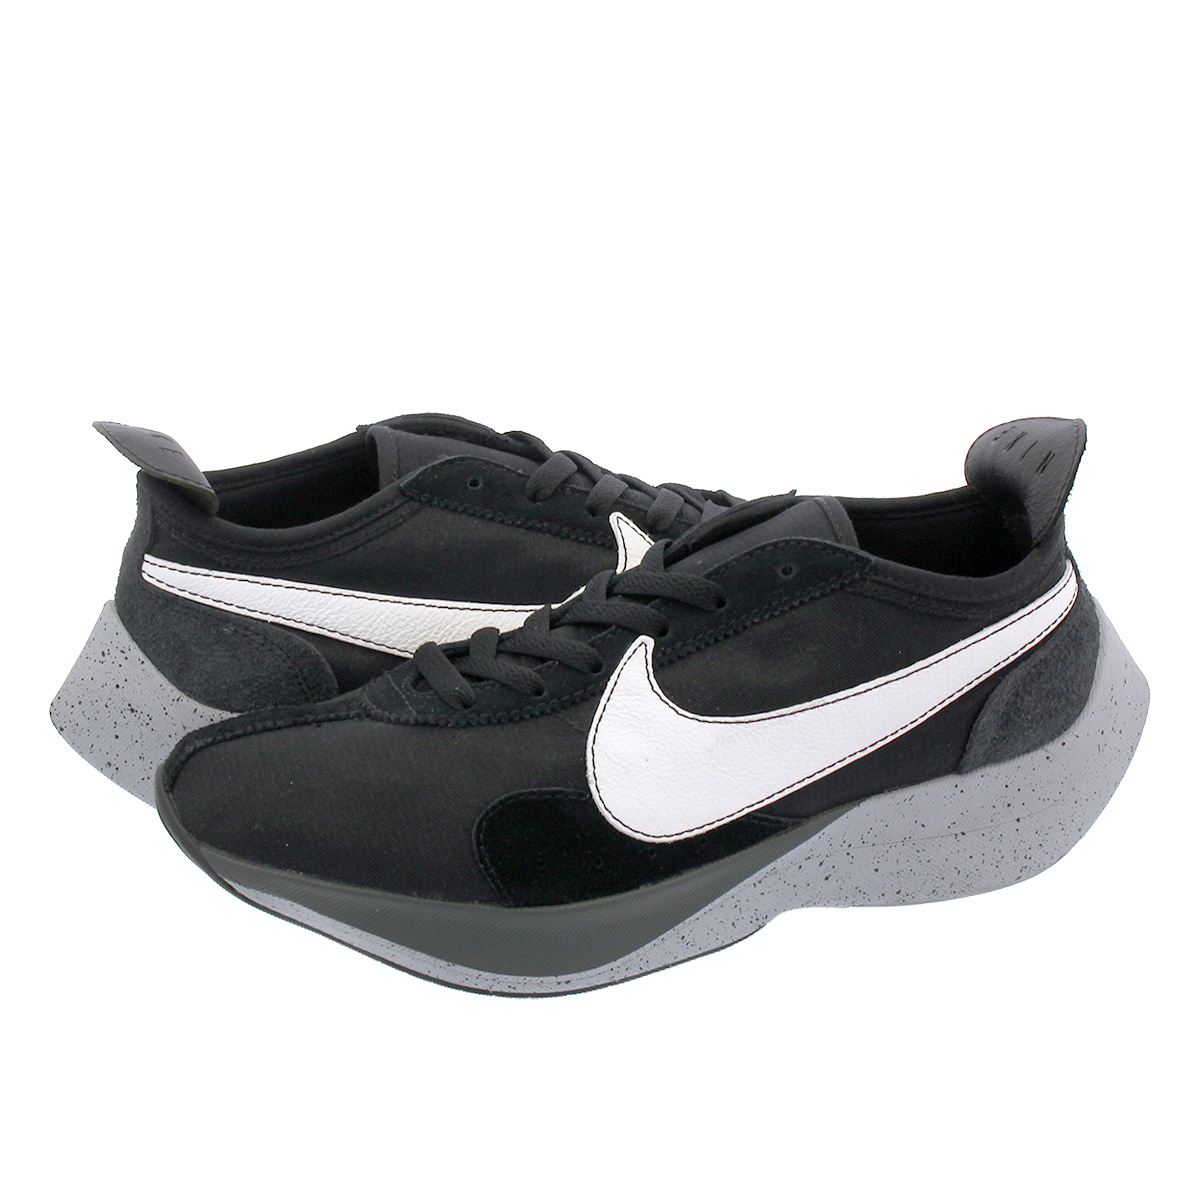 the latest 11269 75454 NIKE MOON RACER Nike moon racer BLACK WHITE WOLF GREY aq4121-001